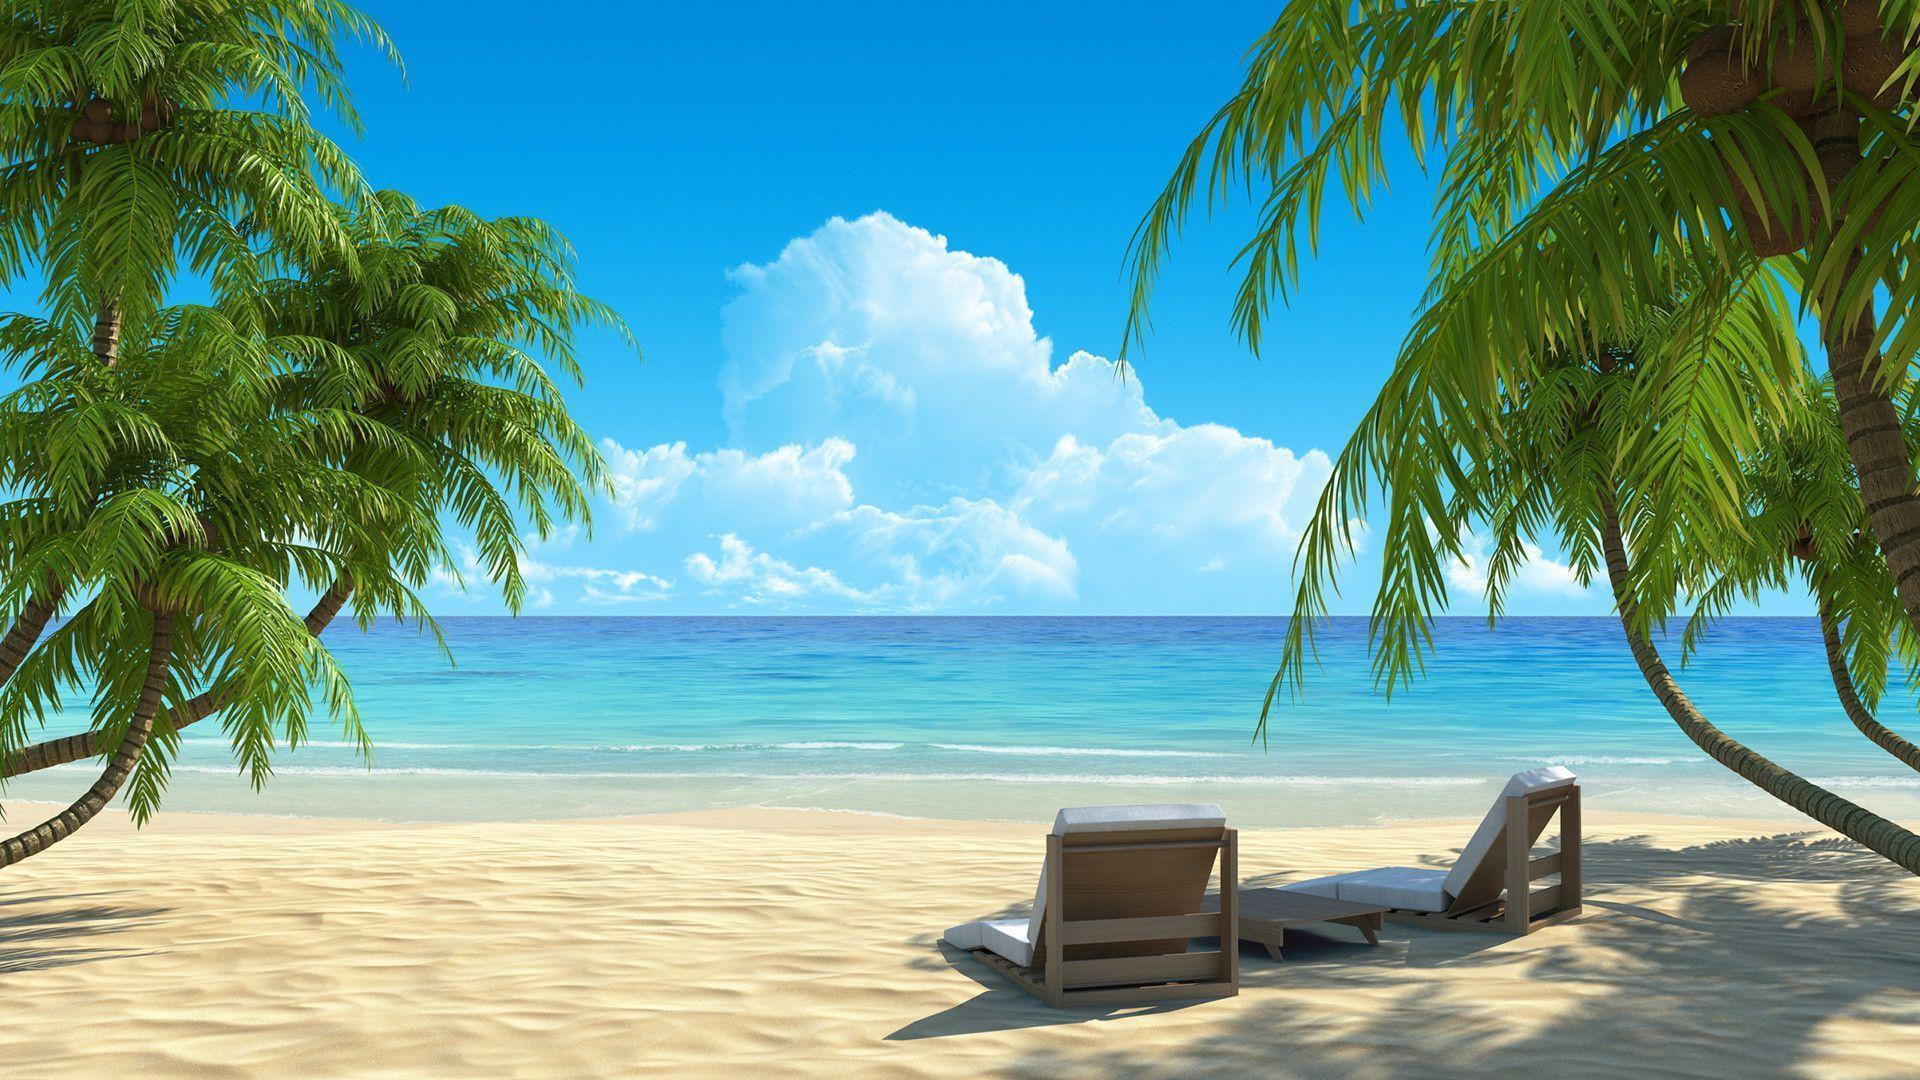 Beach Paradise Wallpapers - Top Free Beach Paradise Backgrounds ...